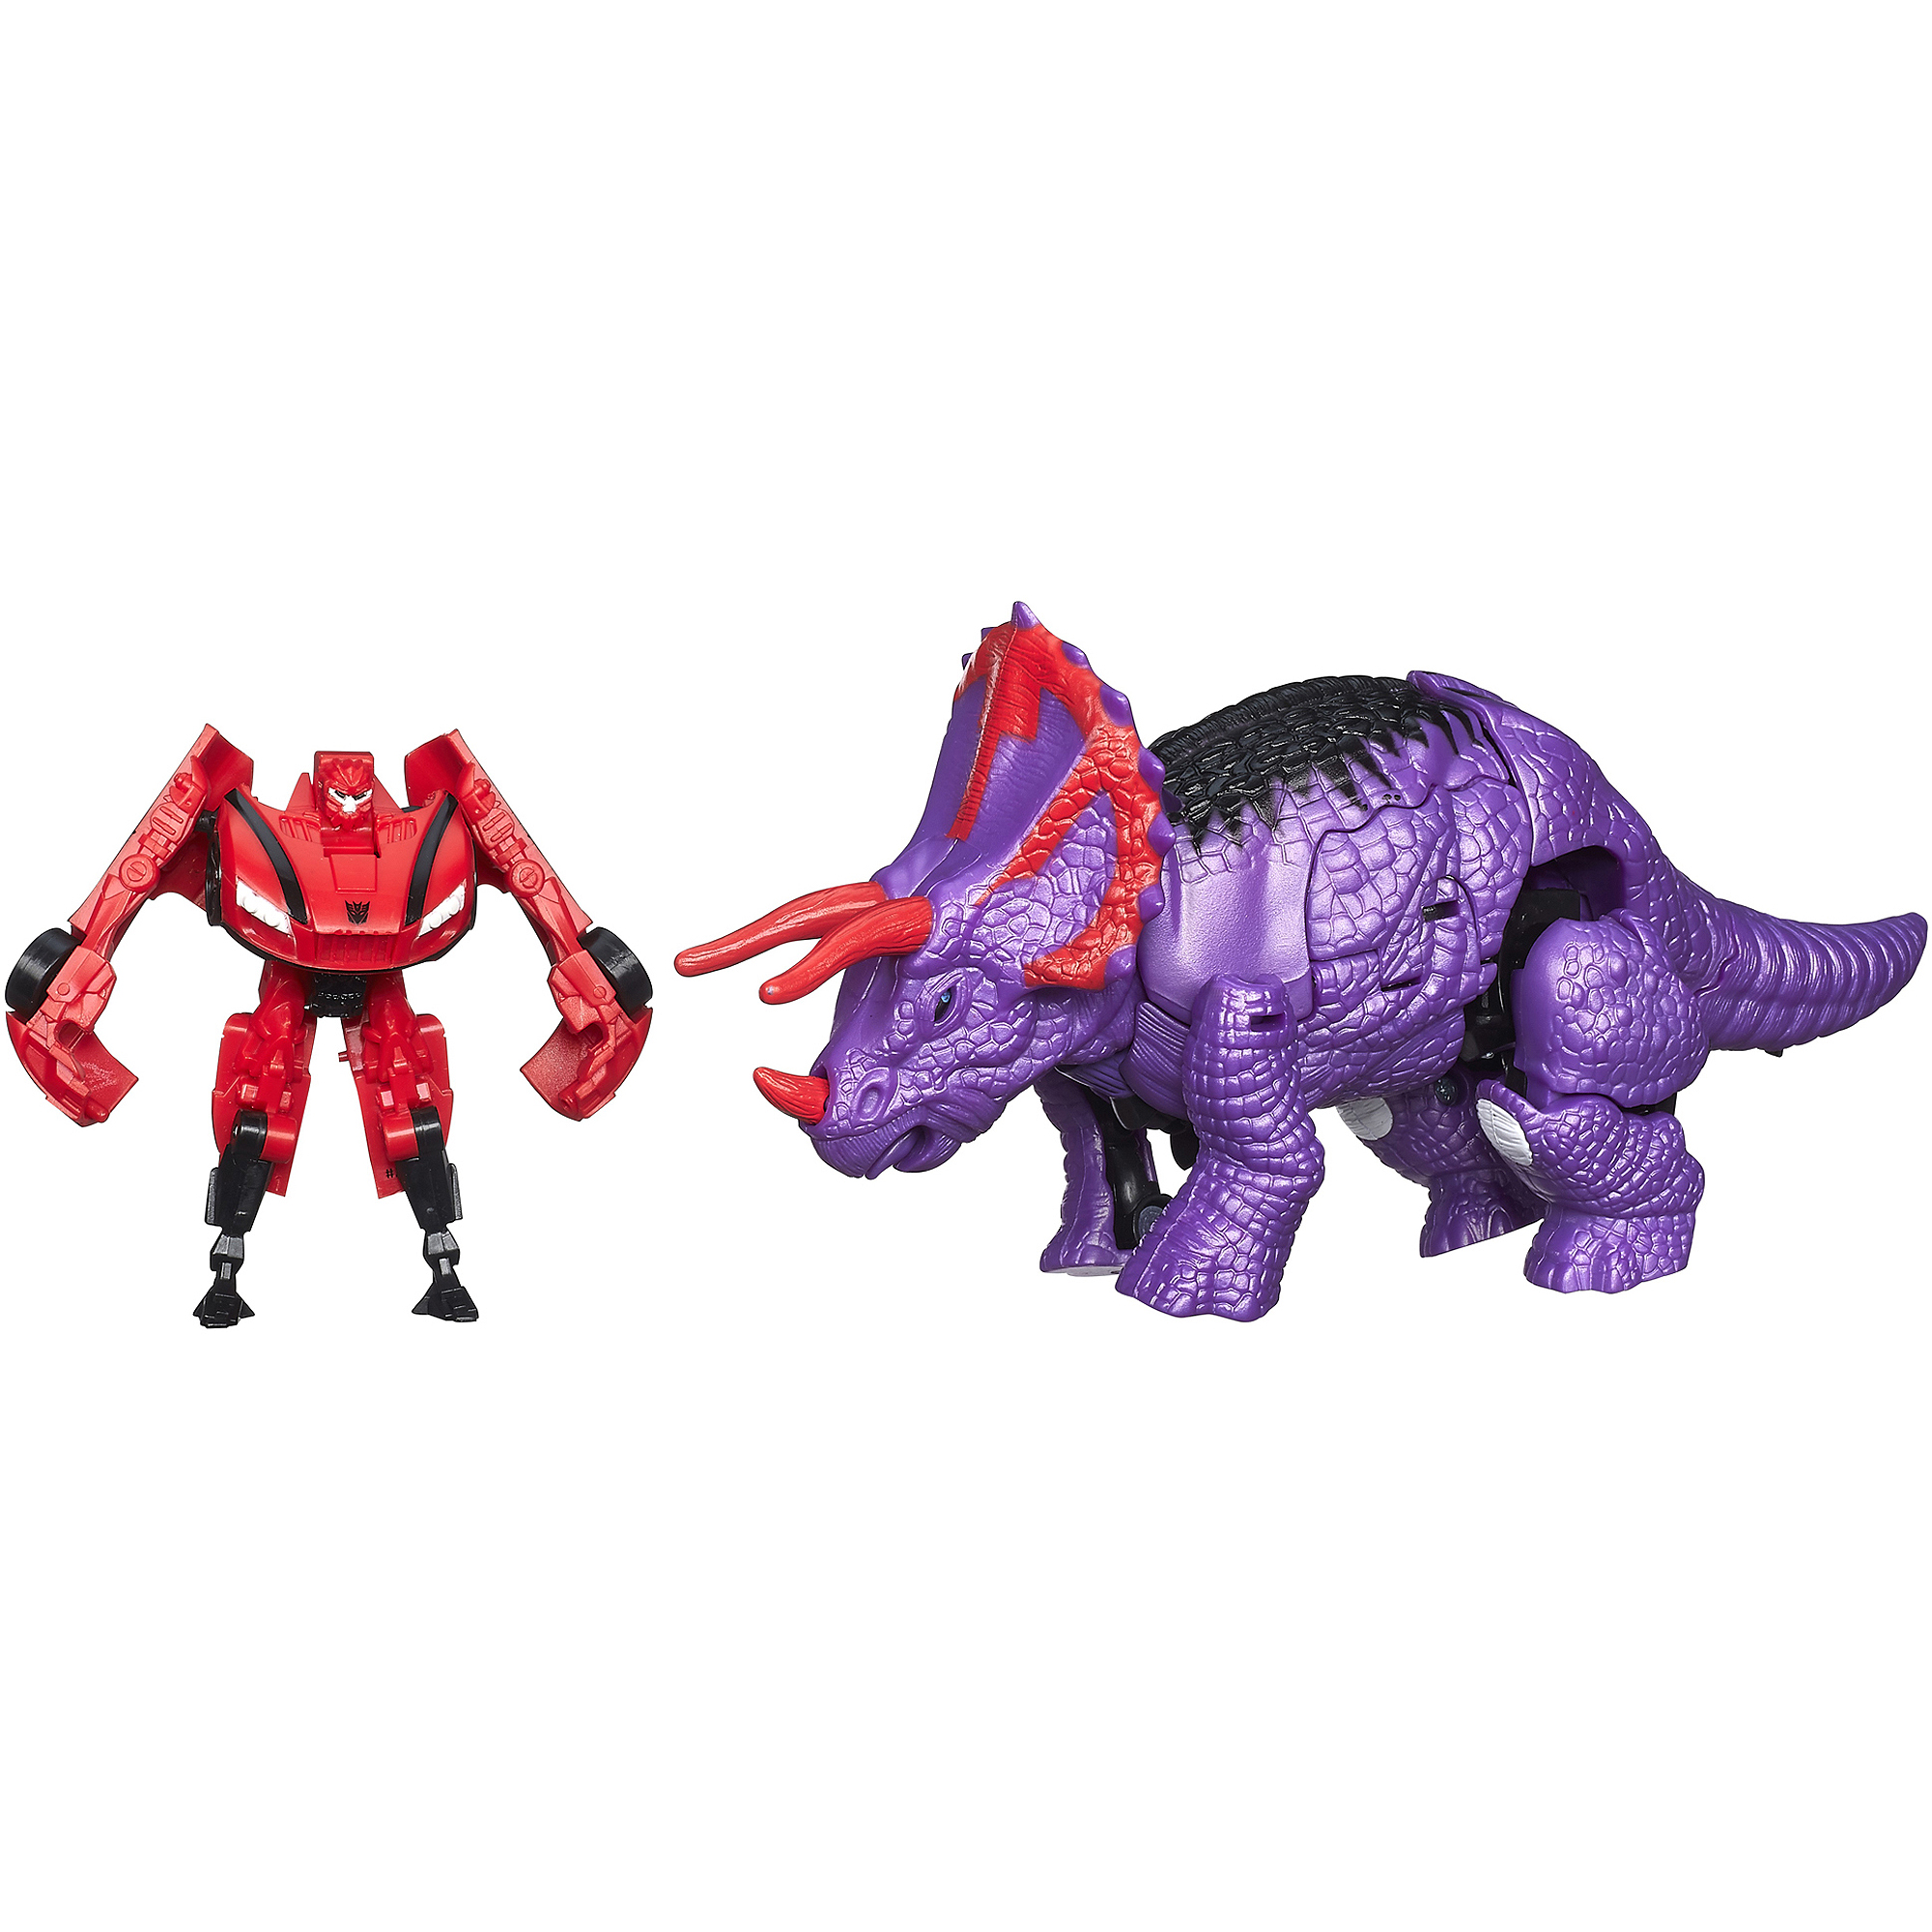 Transformers Age of Extinction Legion Class 2-Pack Decepticon Stinger and Dinobot Slug Figures